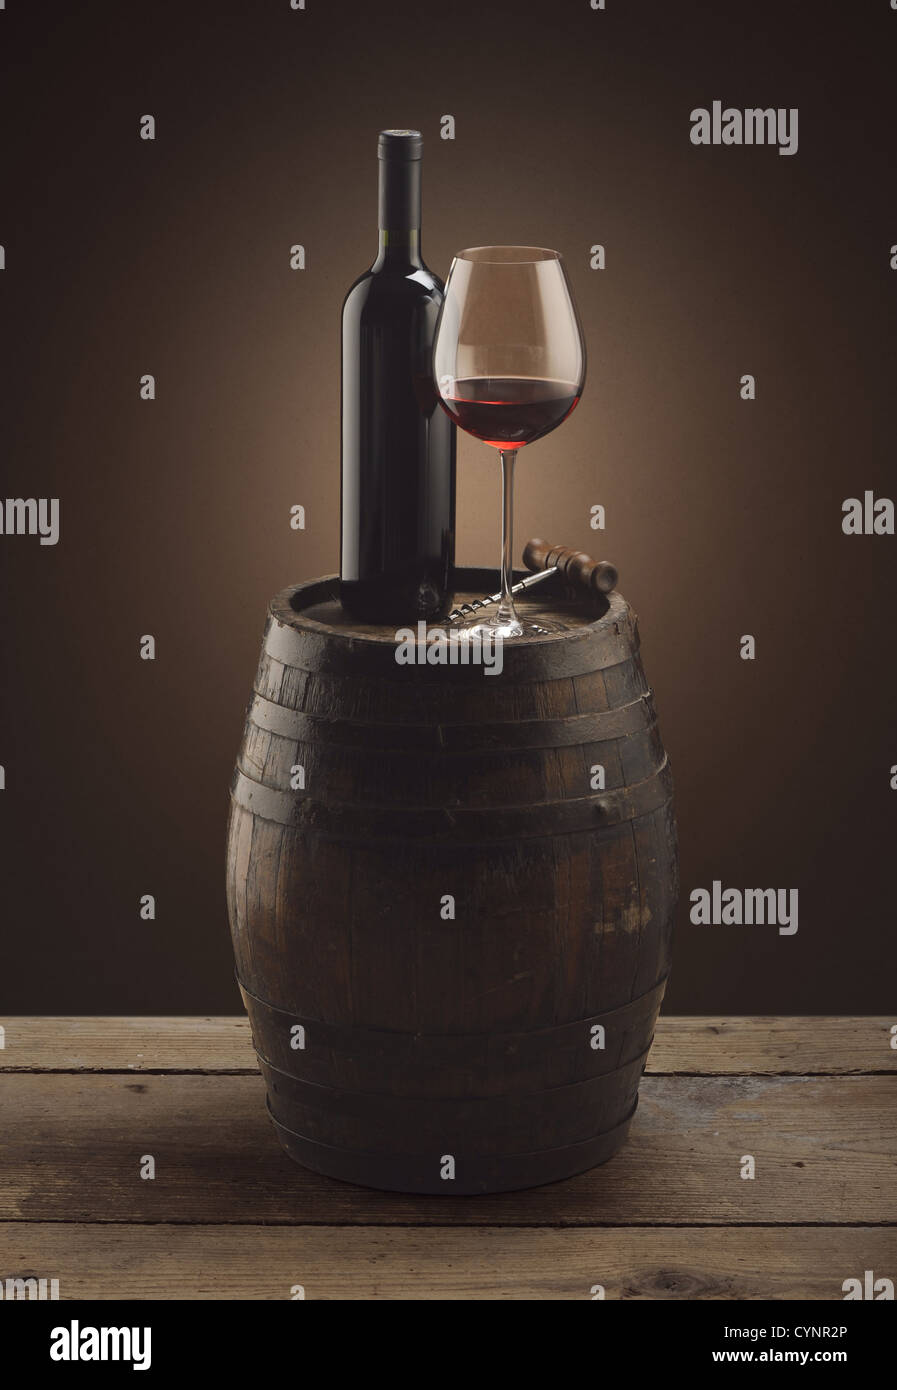 red wine bottle and wine glass on wooden barrel - Stock Image